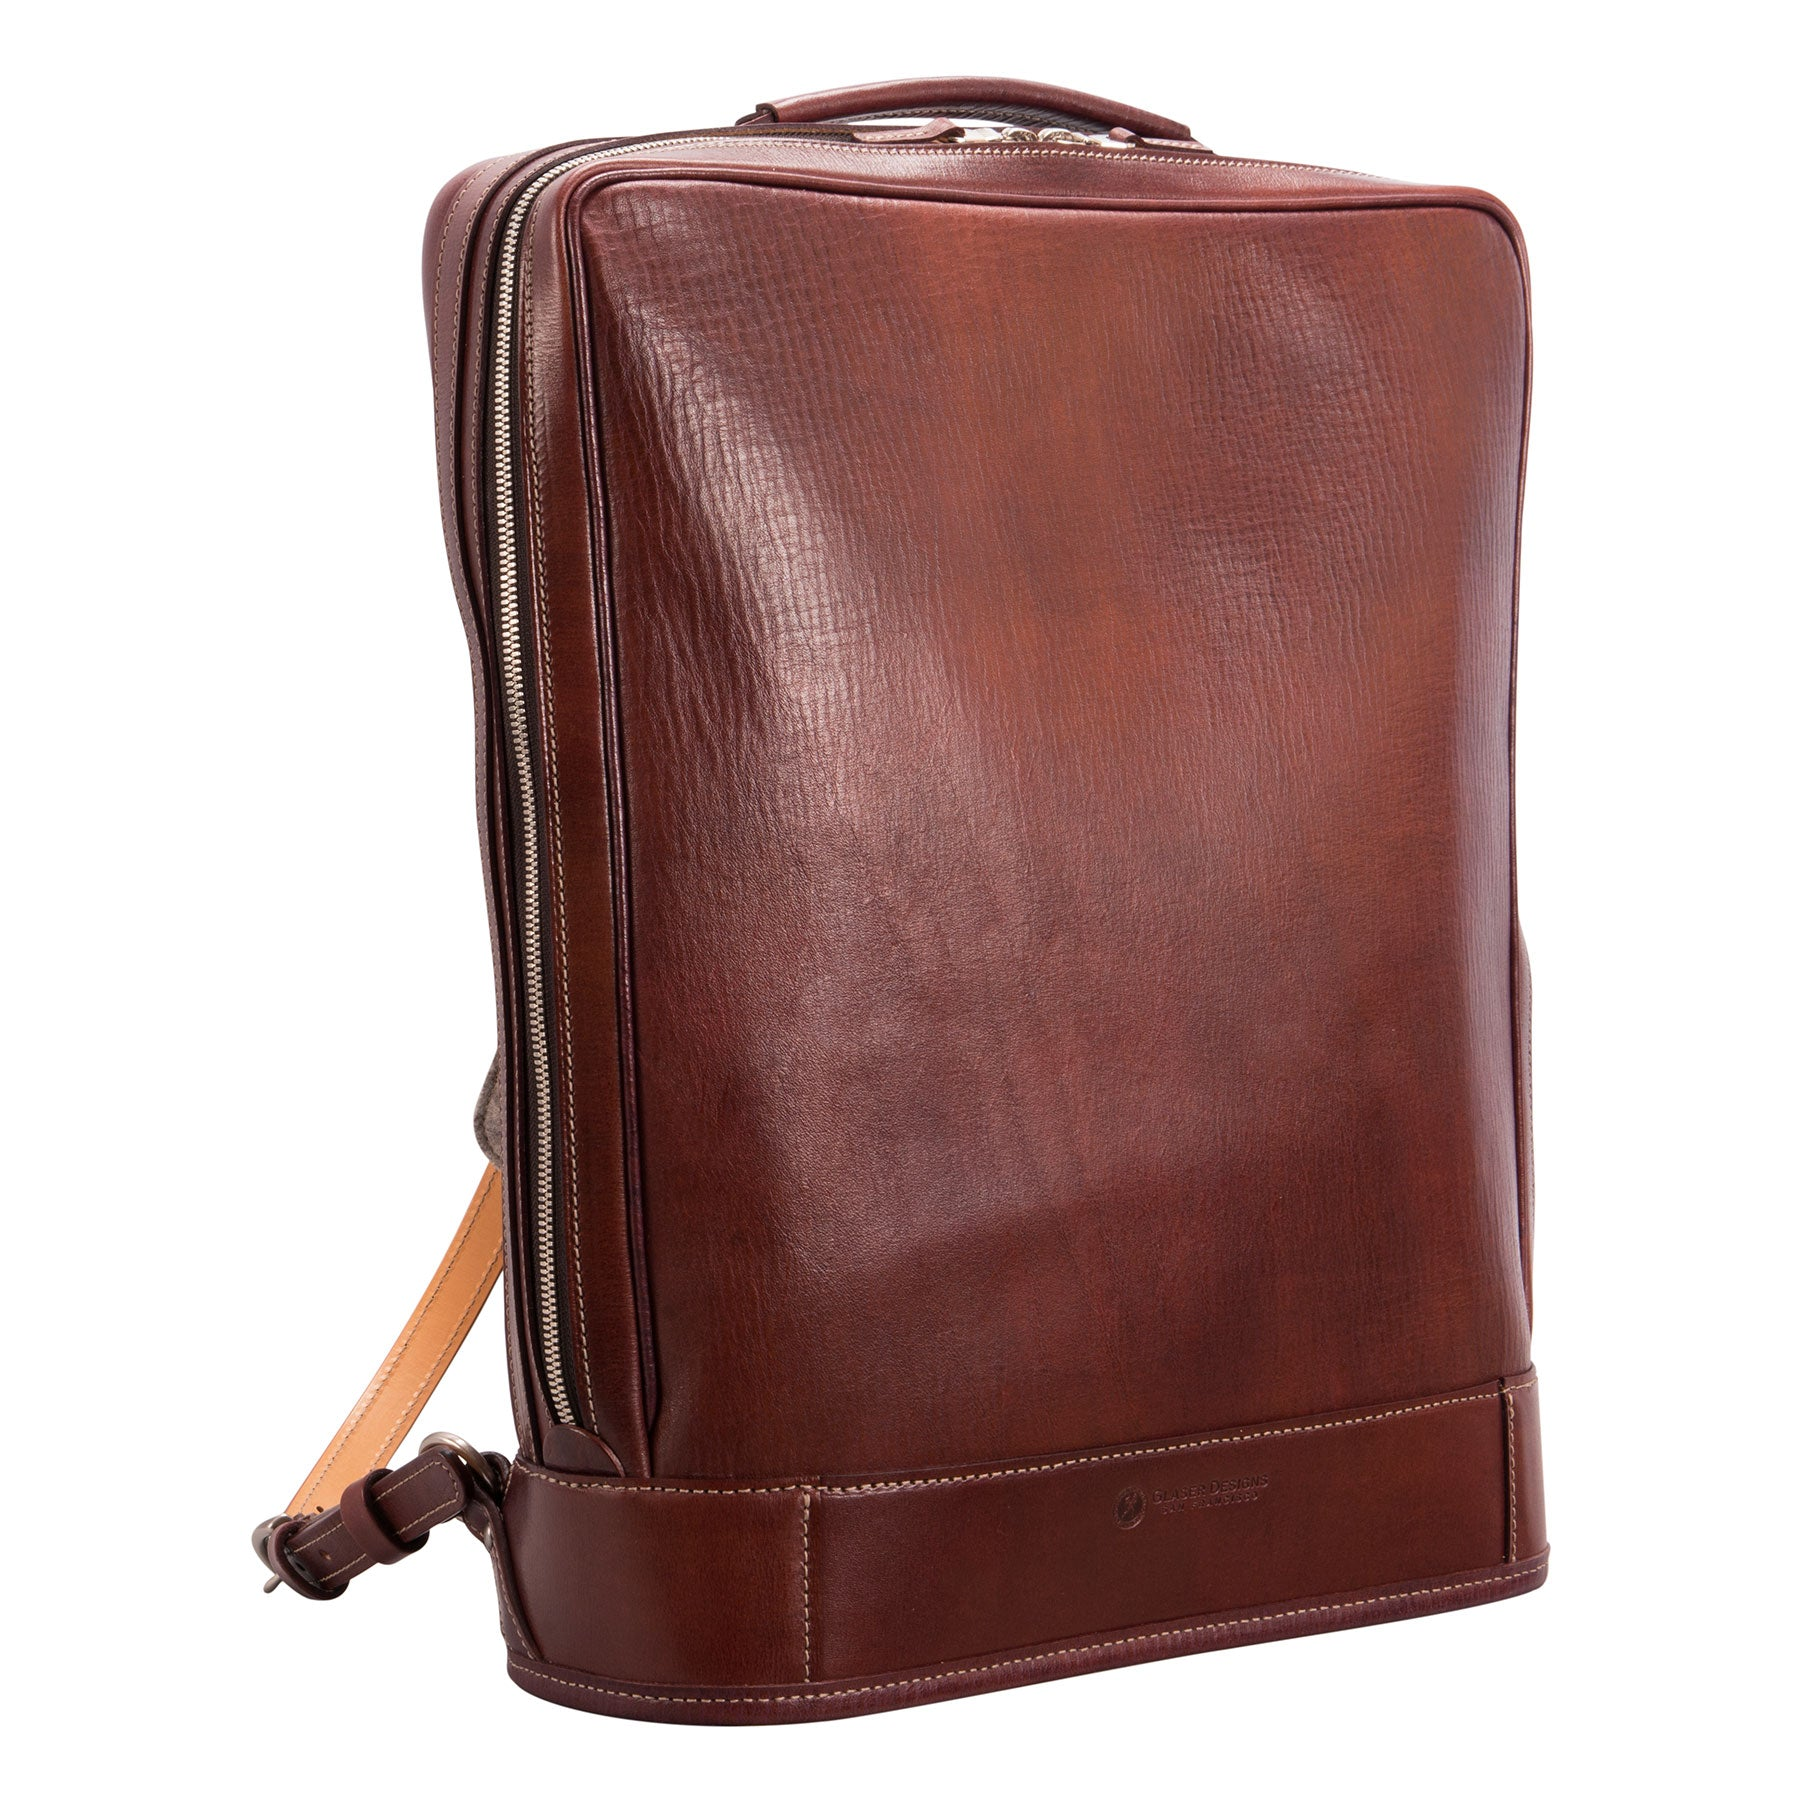 Glaser Designs Business Backpack. Hand colored Sienna vegetable tanned leather. Solid brass hardware. Made to measure, custom size.